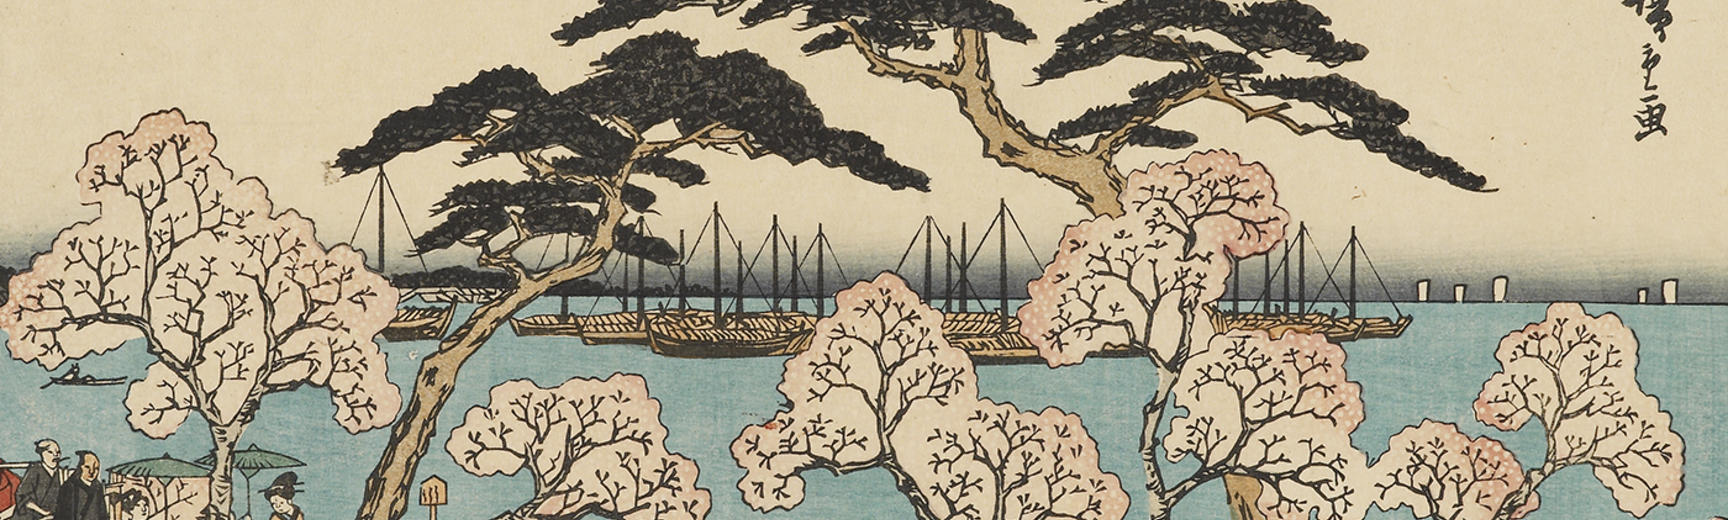 A woodblock print of a landscape featuring a group celebrating beneath cherry blossoms by the sea